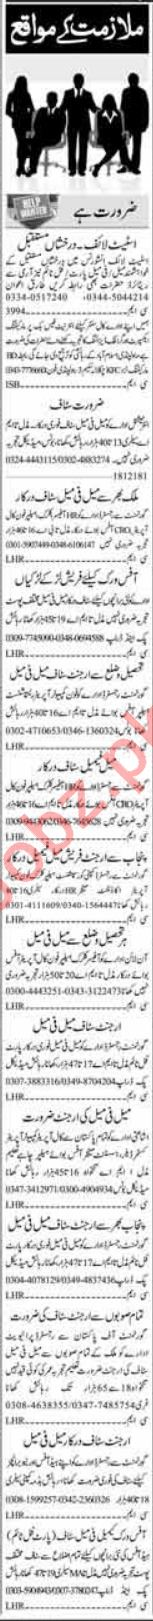 Daily Dunya Newspaper Classified Jobs 2019 In Lahore